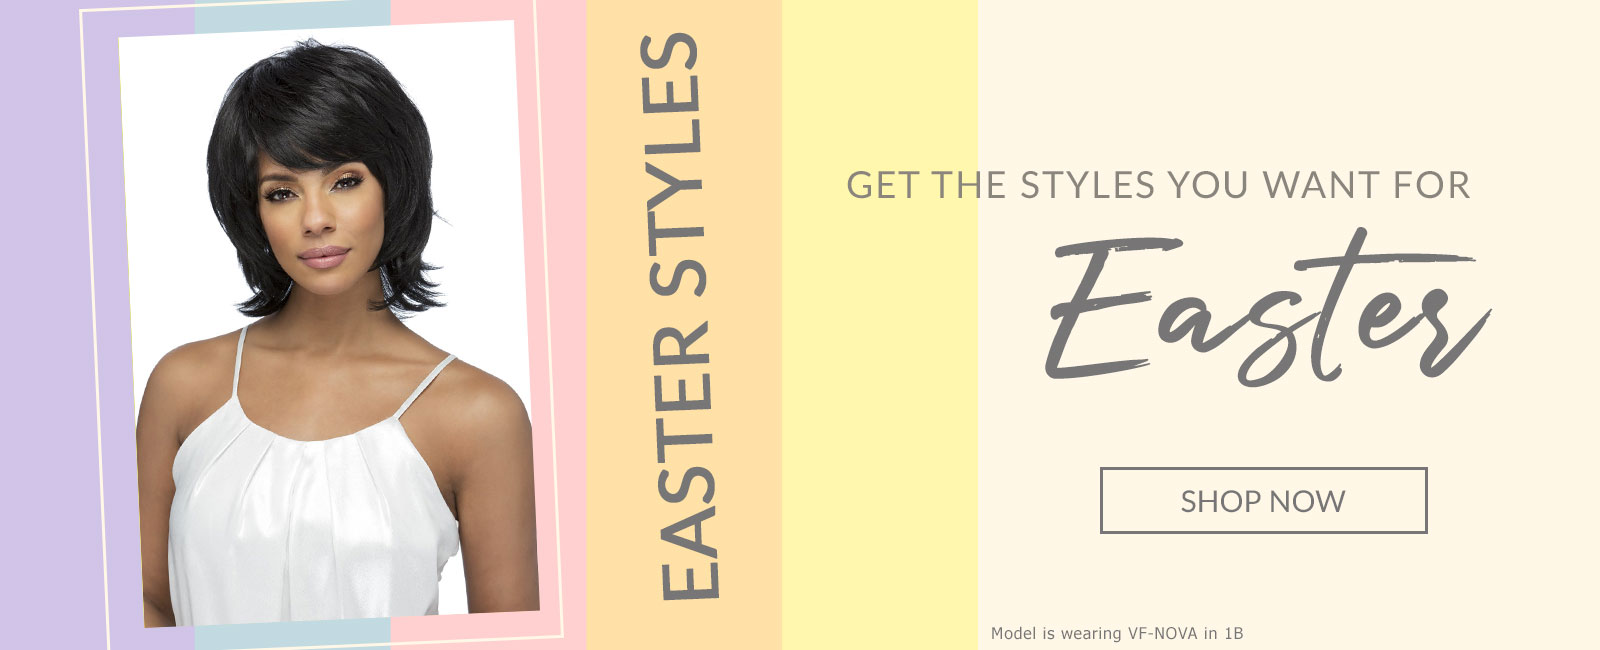 2020-03-26-easter-styles-hp-banner-mobile